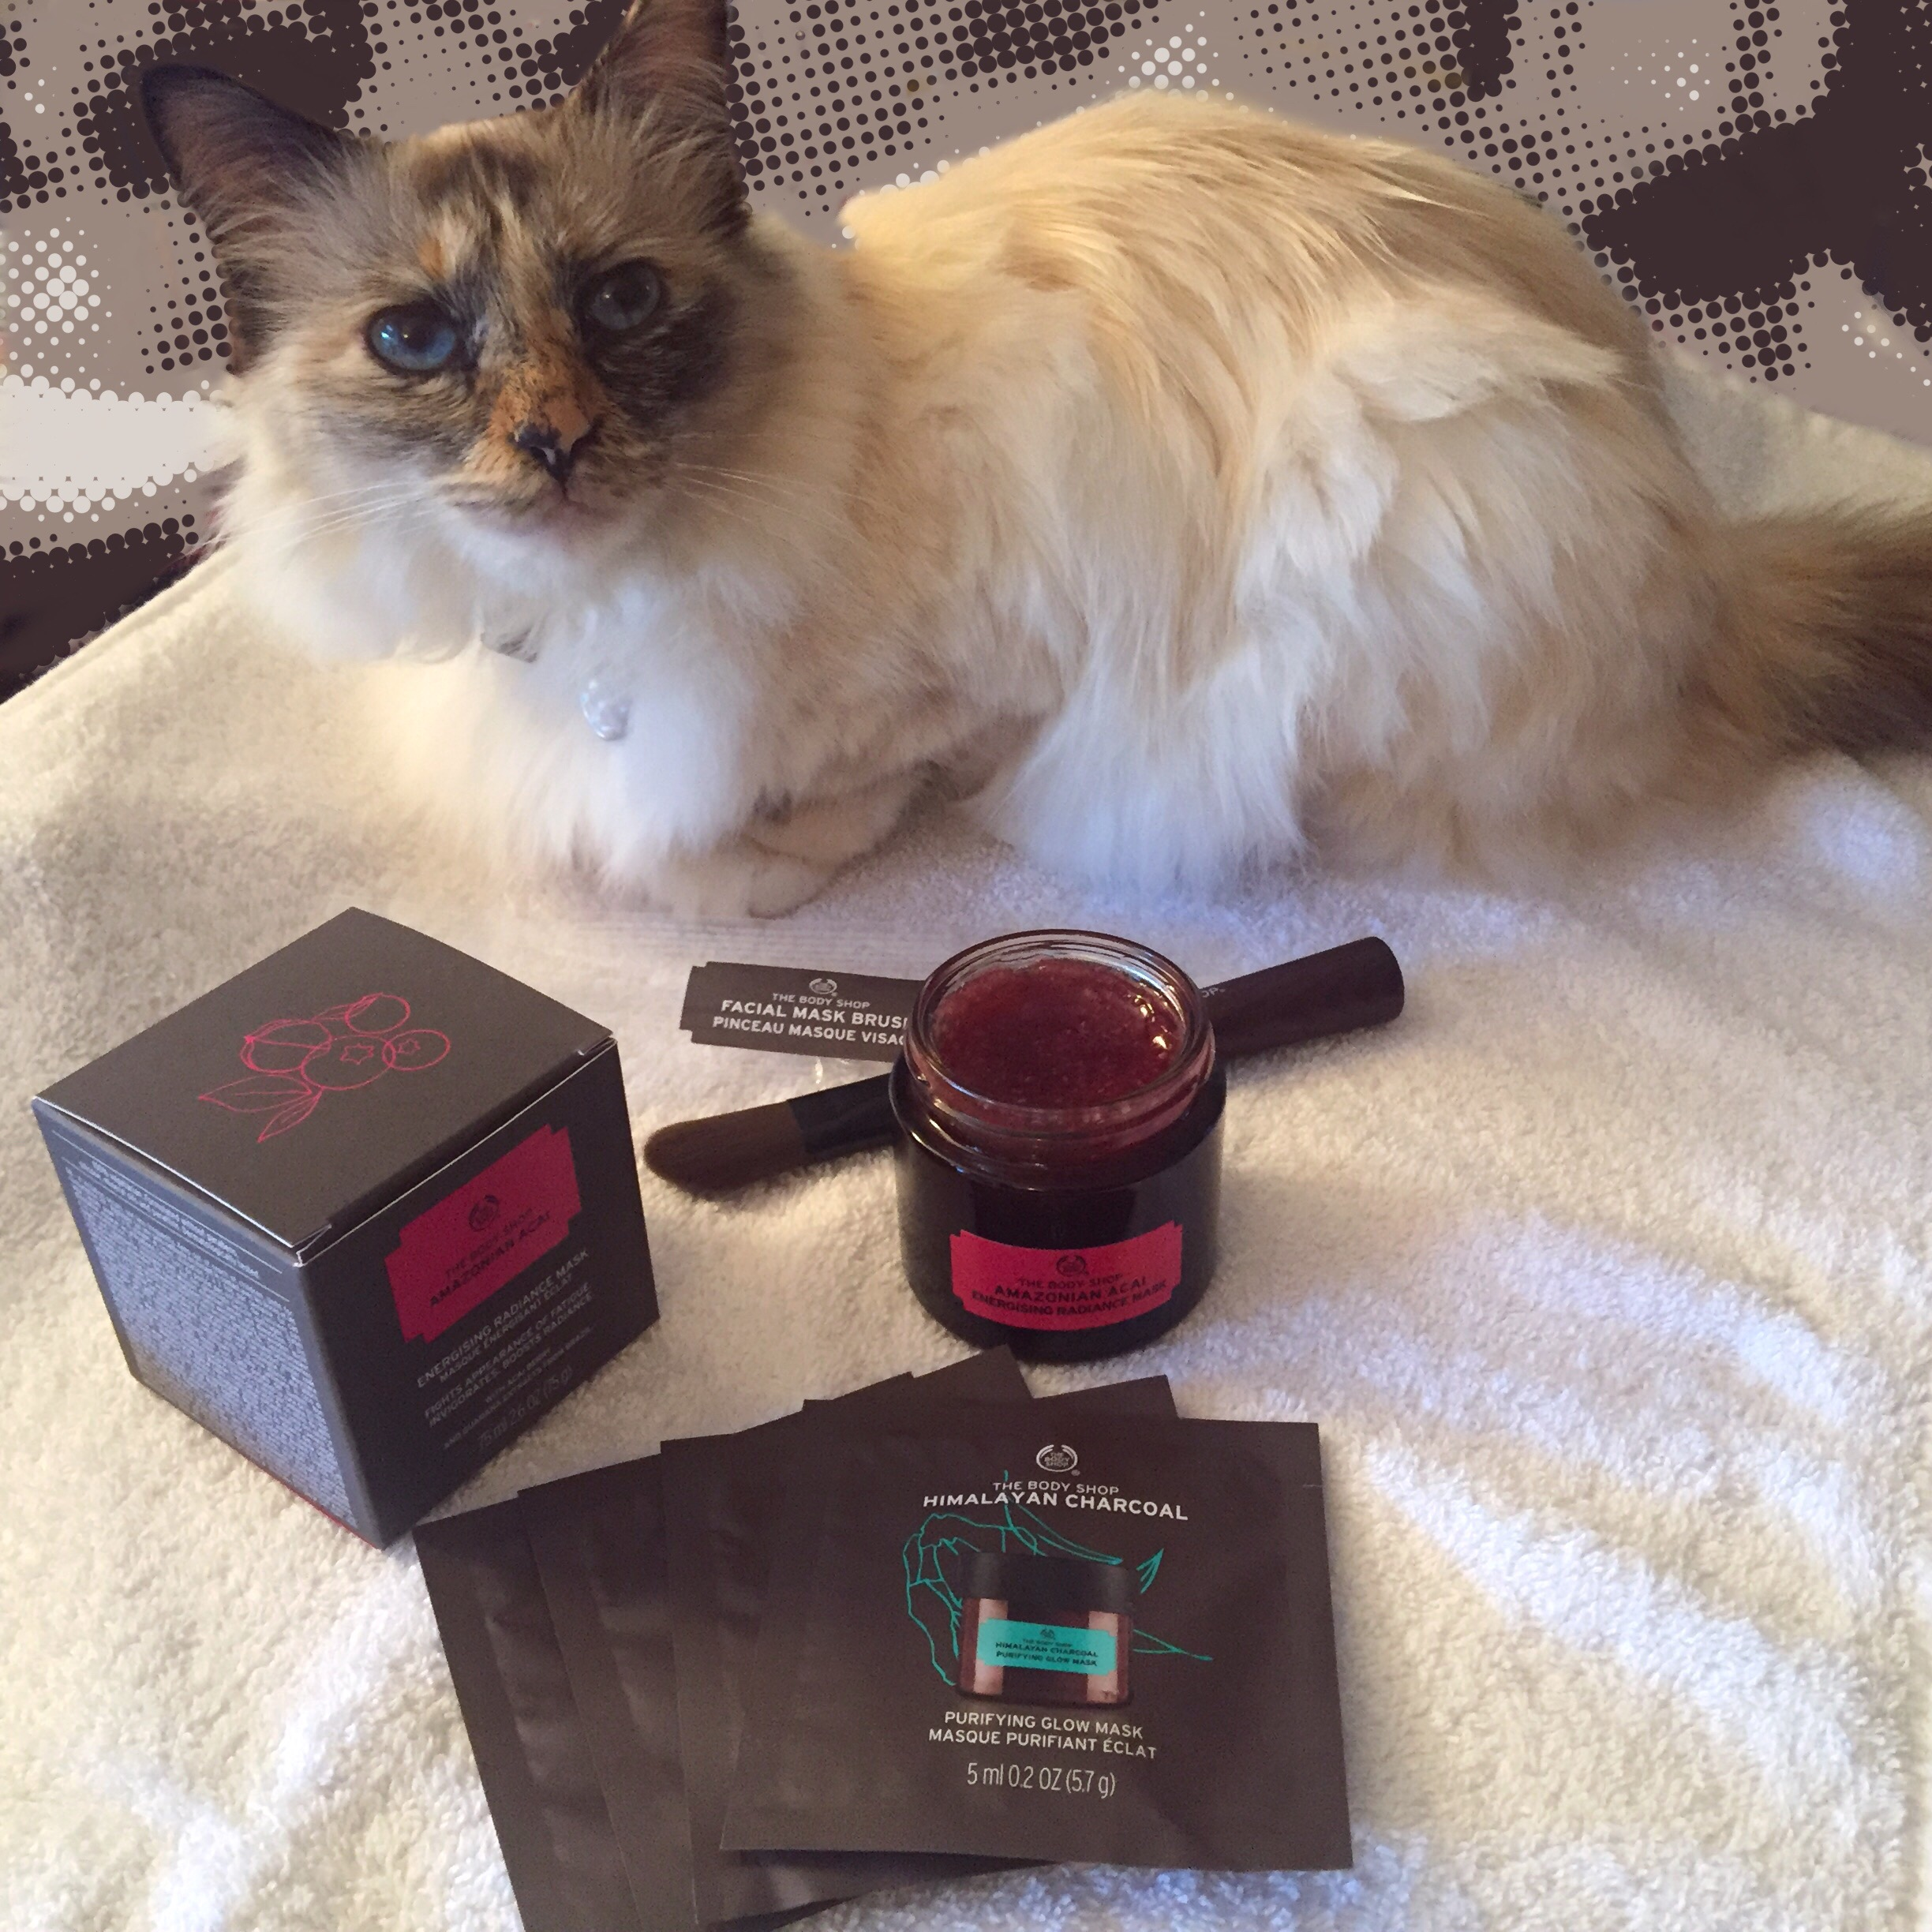 Vie de chat: Jerry et Minnie testent les nouveaux masques The Body Shop